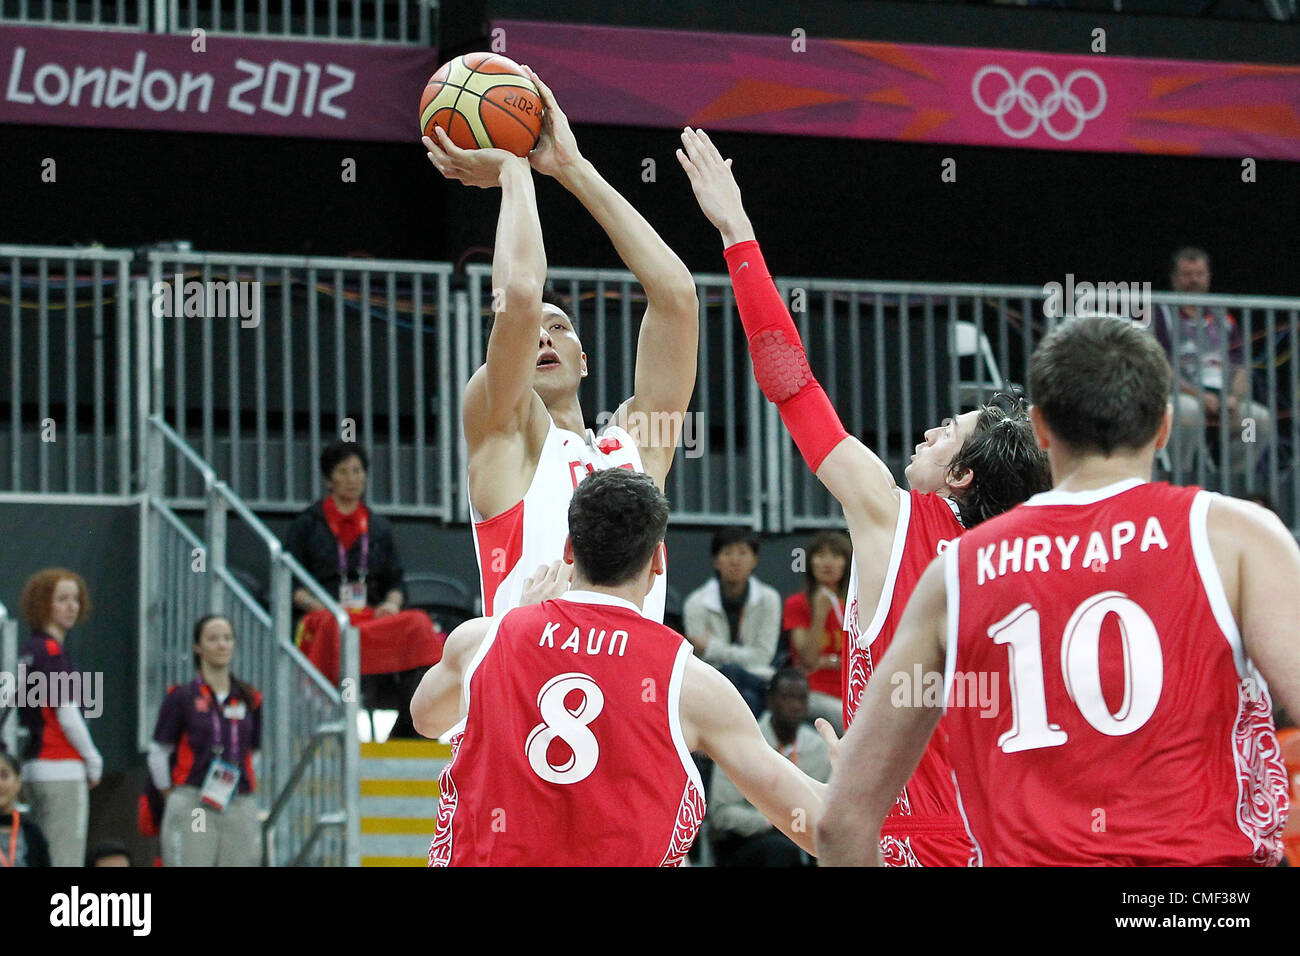 31.07.2012. London, England. China Jianlian Yi takes a jumpshot over Russia Alexey Shved during the 73-54 Russia - Stock Image